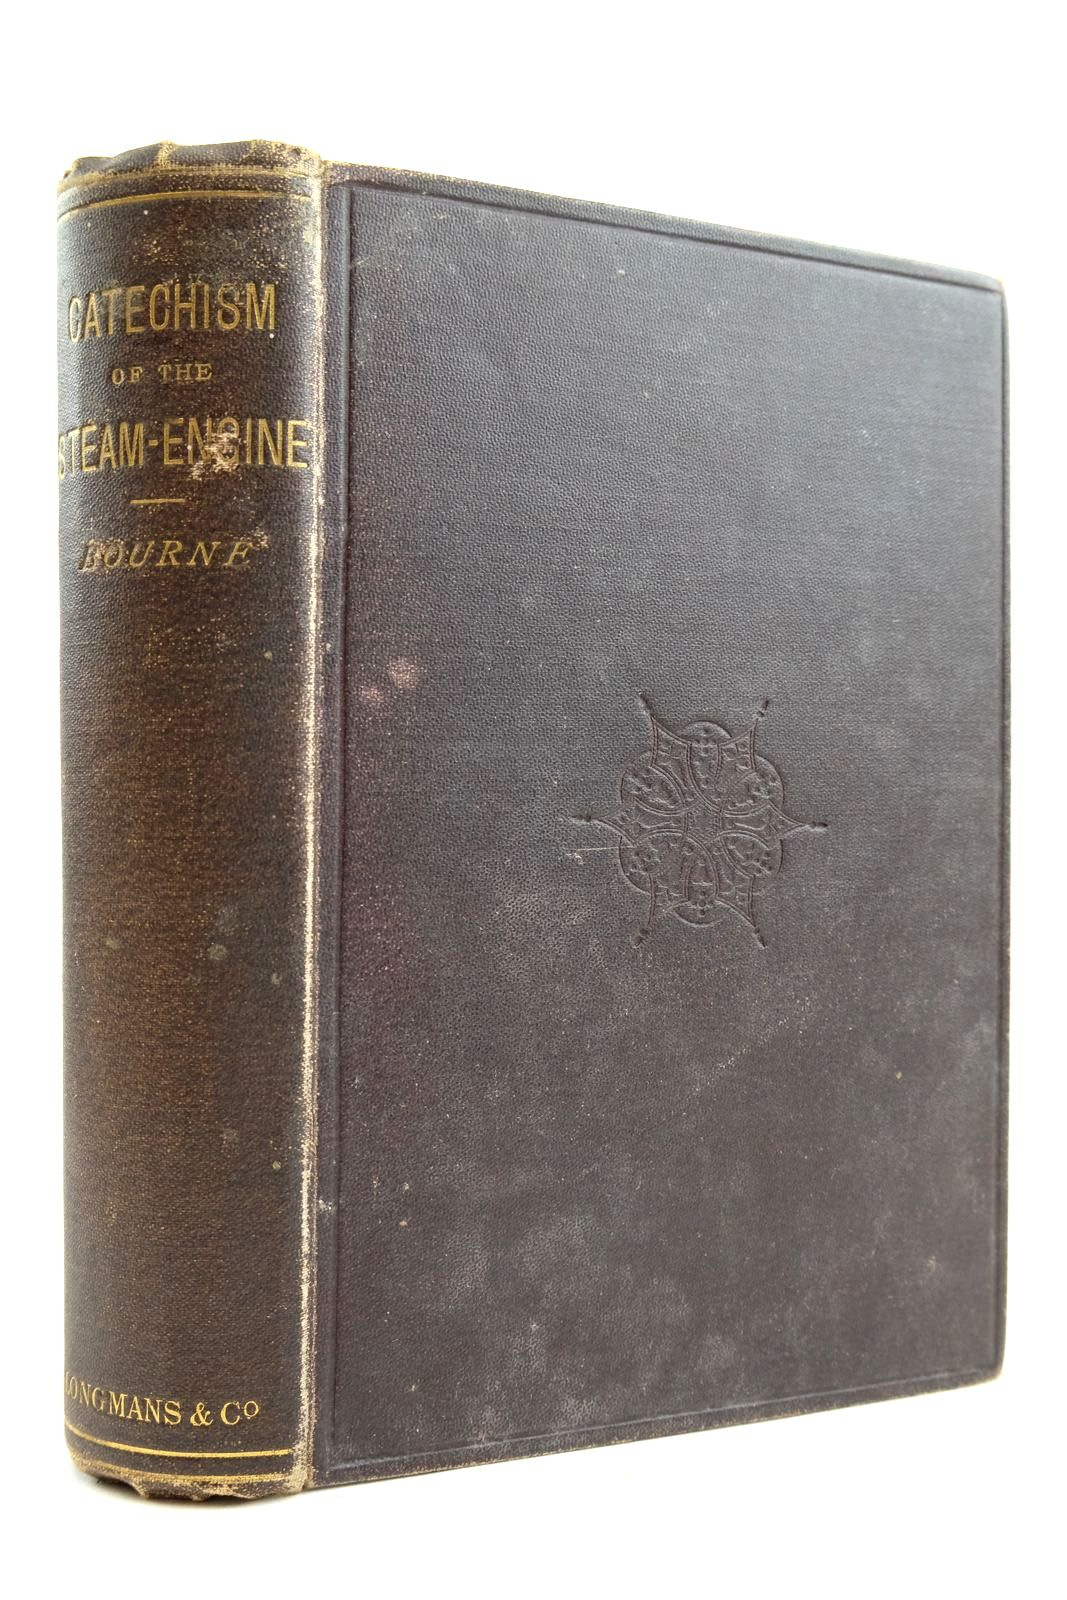 Photo of A CATECHISM OF THE STEAM ENGINE- Stock Number: 2133319